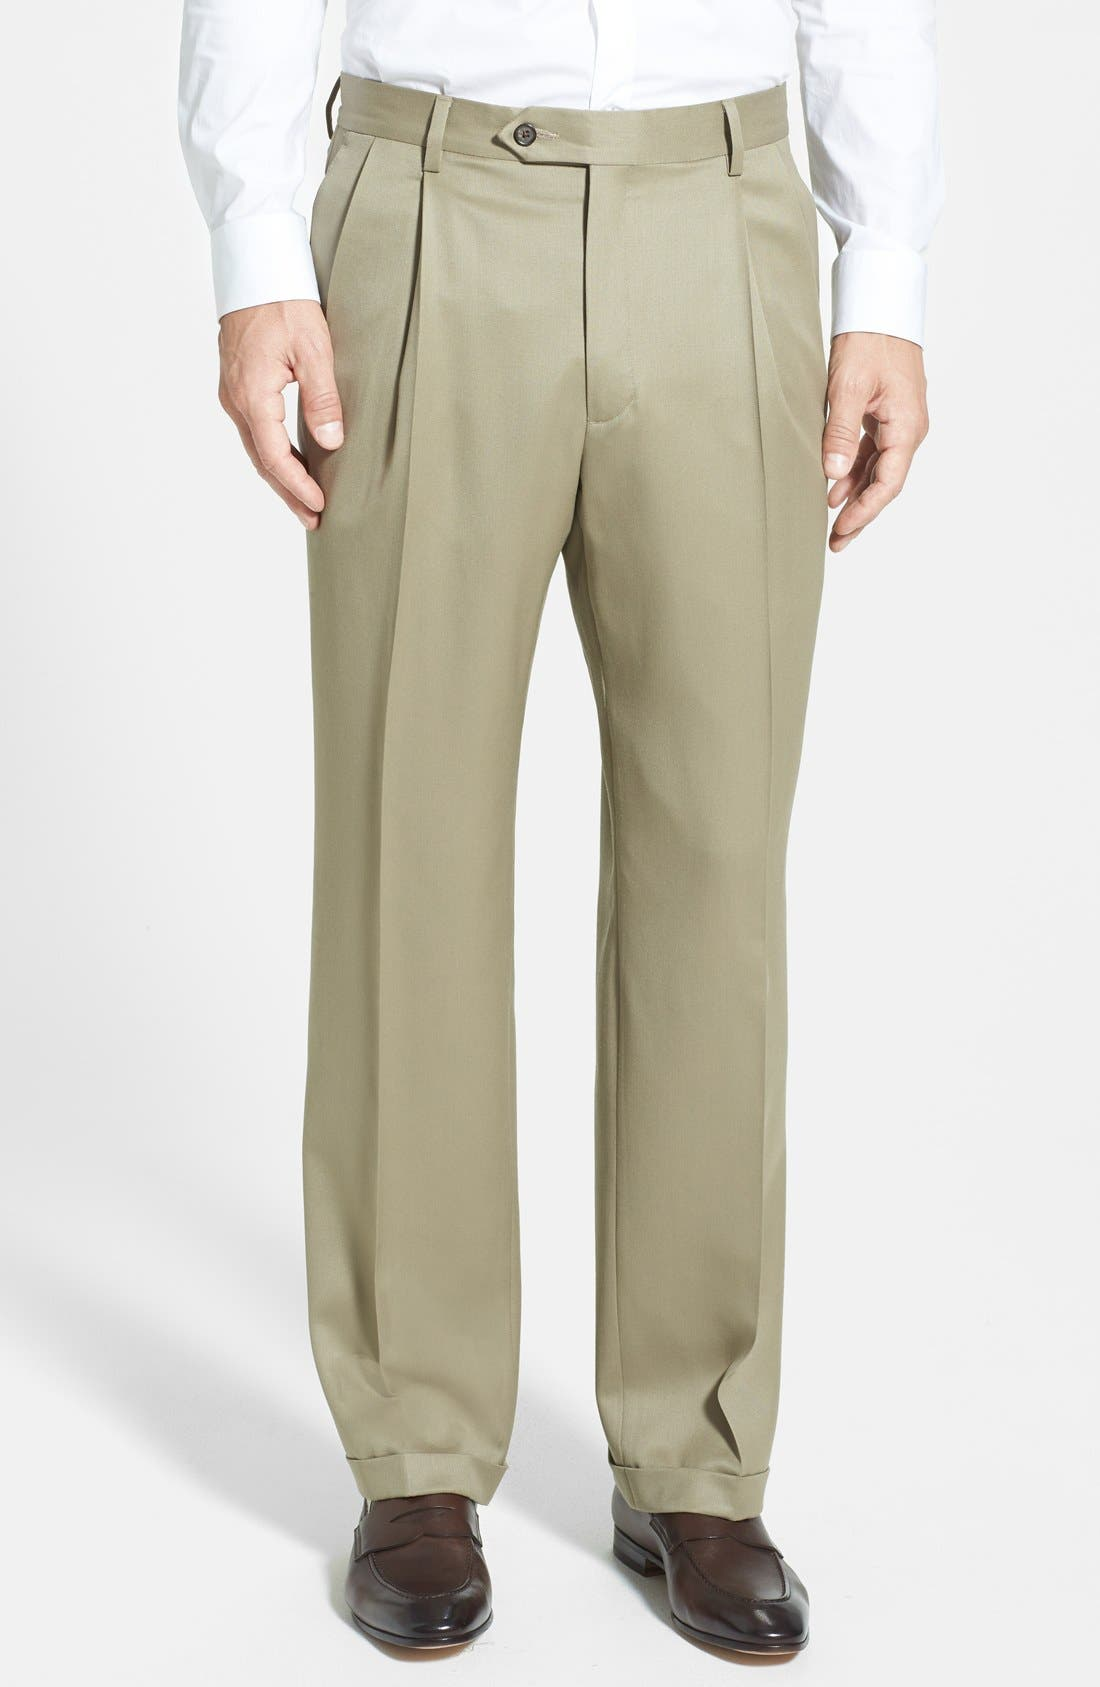 Mens Pleated Khaki Pants R2uRlDWs